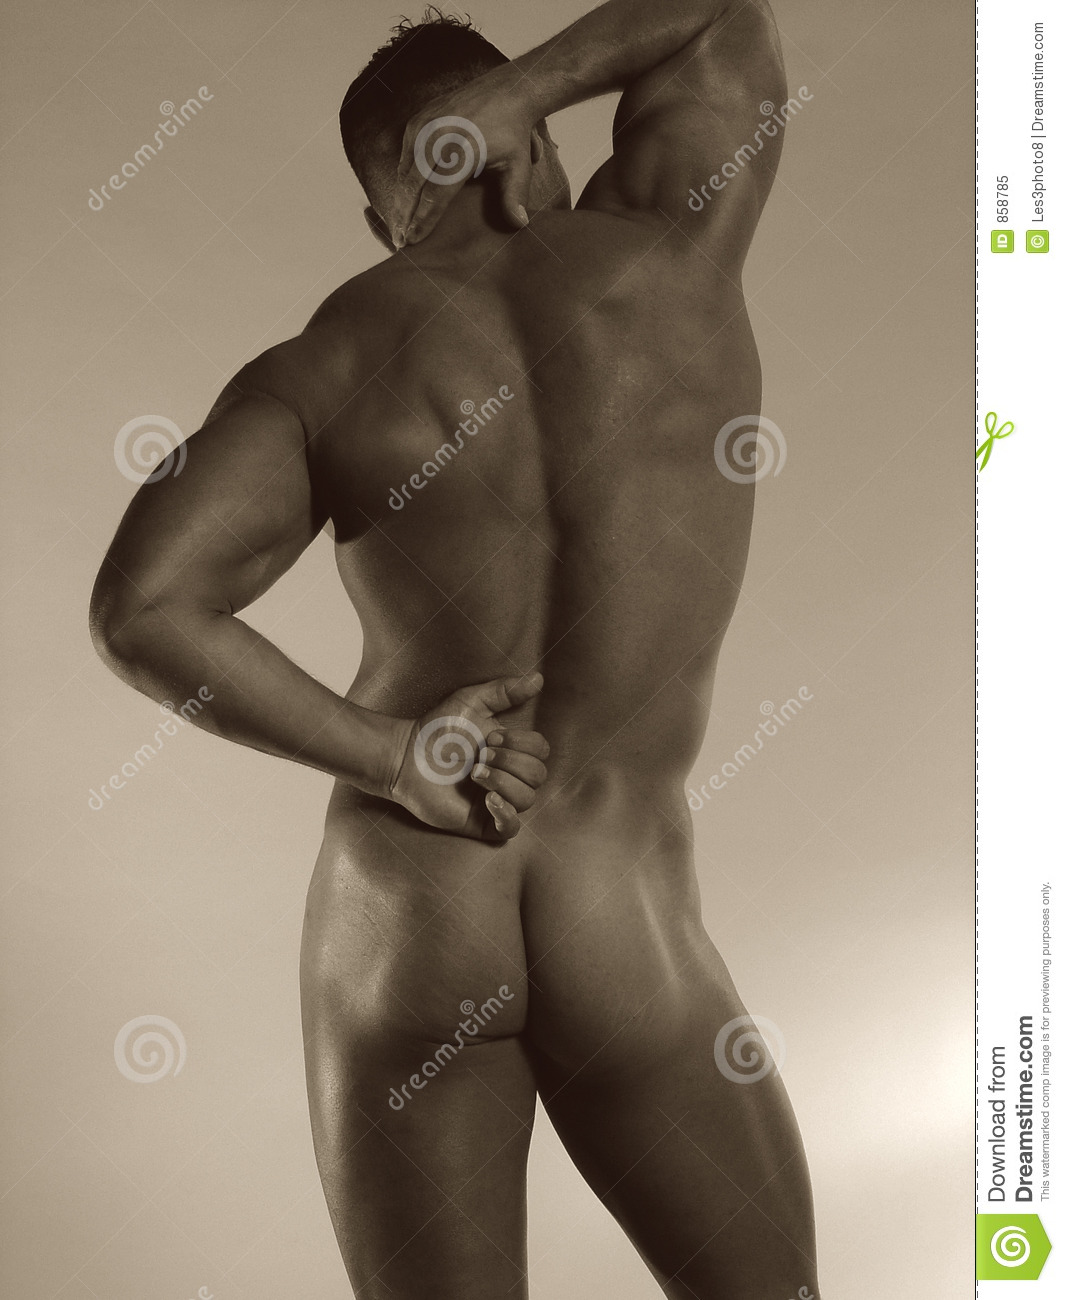 male nude rear royalty free stock photo   image 858785